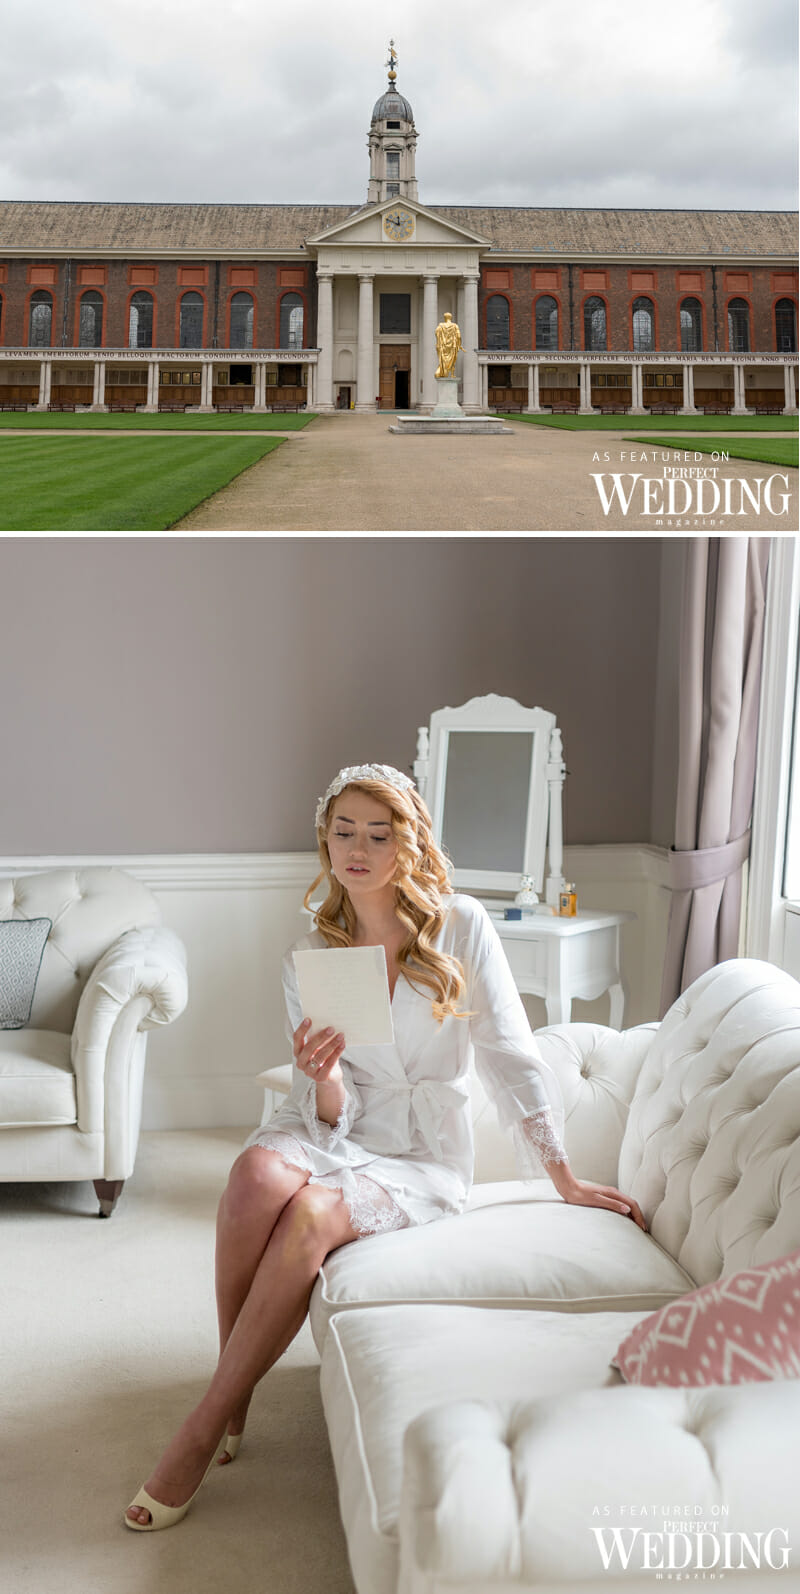 Chelle Belle Makeup Artistry, Victoria Murray Photography, Royal Wedding Inspiration, Wedding Decor Ideas, Pronovias, Pronovias dress, UK Wedding, UK Wedding Vendors, Perfect Wedding Magazine, Perfect Wedding Blog